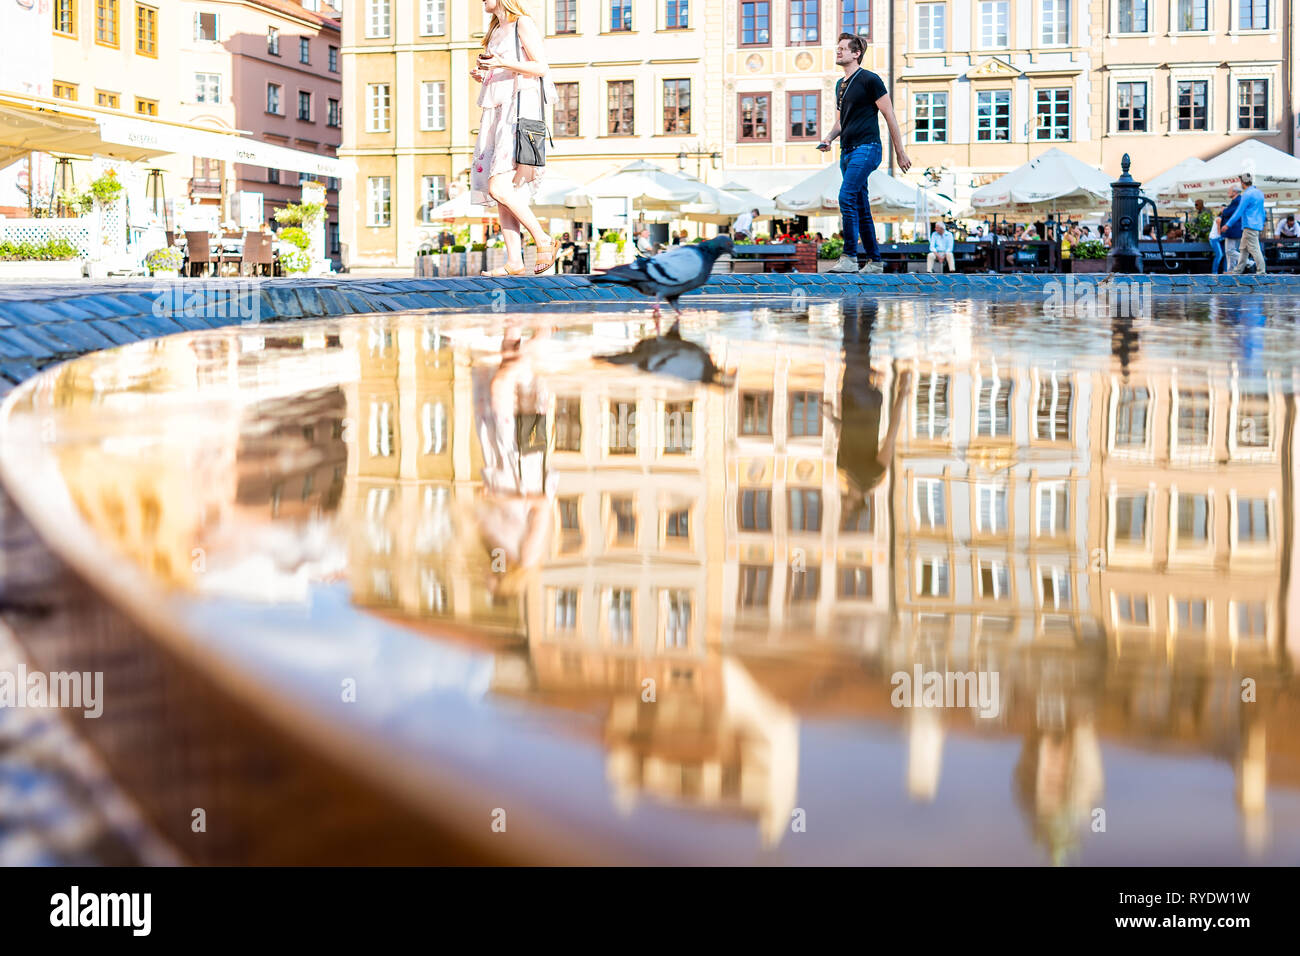 Warsaw, Poland - August 22, 2018: Historic cityscape with architecture buildings and mermaid water fountain in old town market square with birds refle - Stock Image